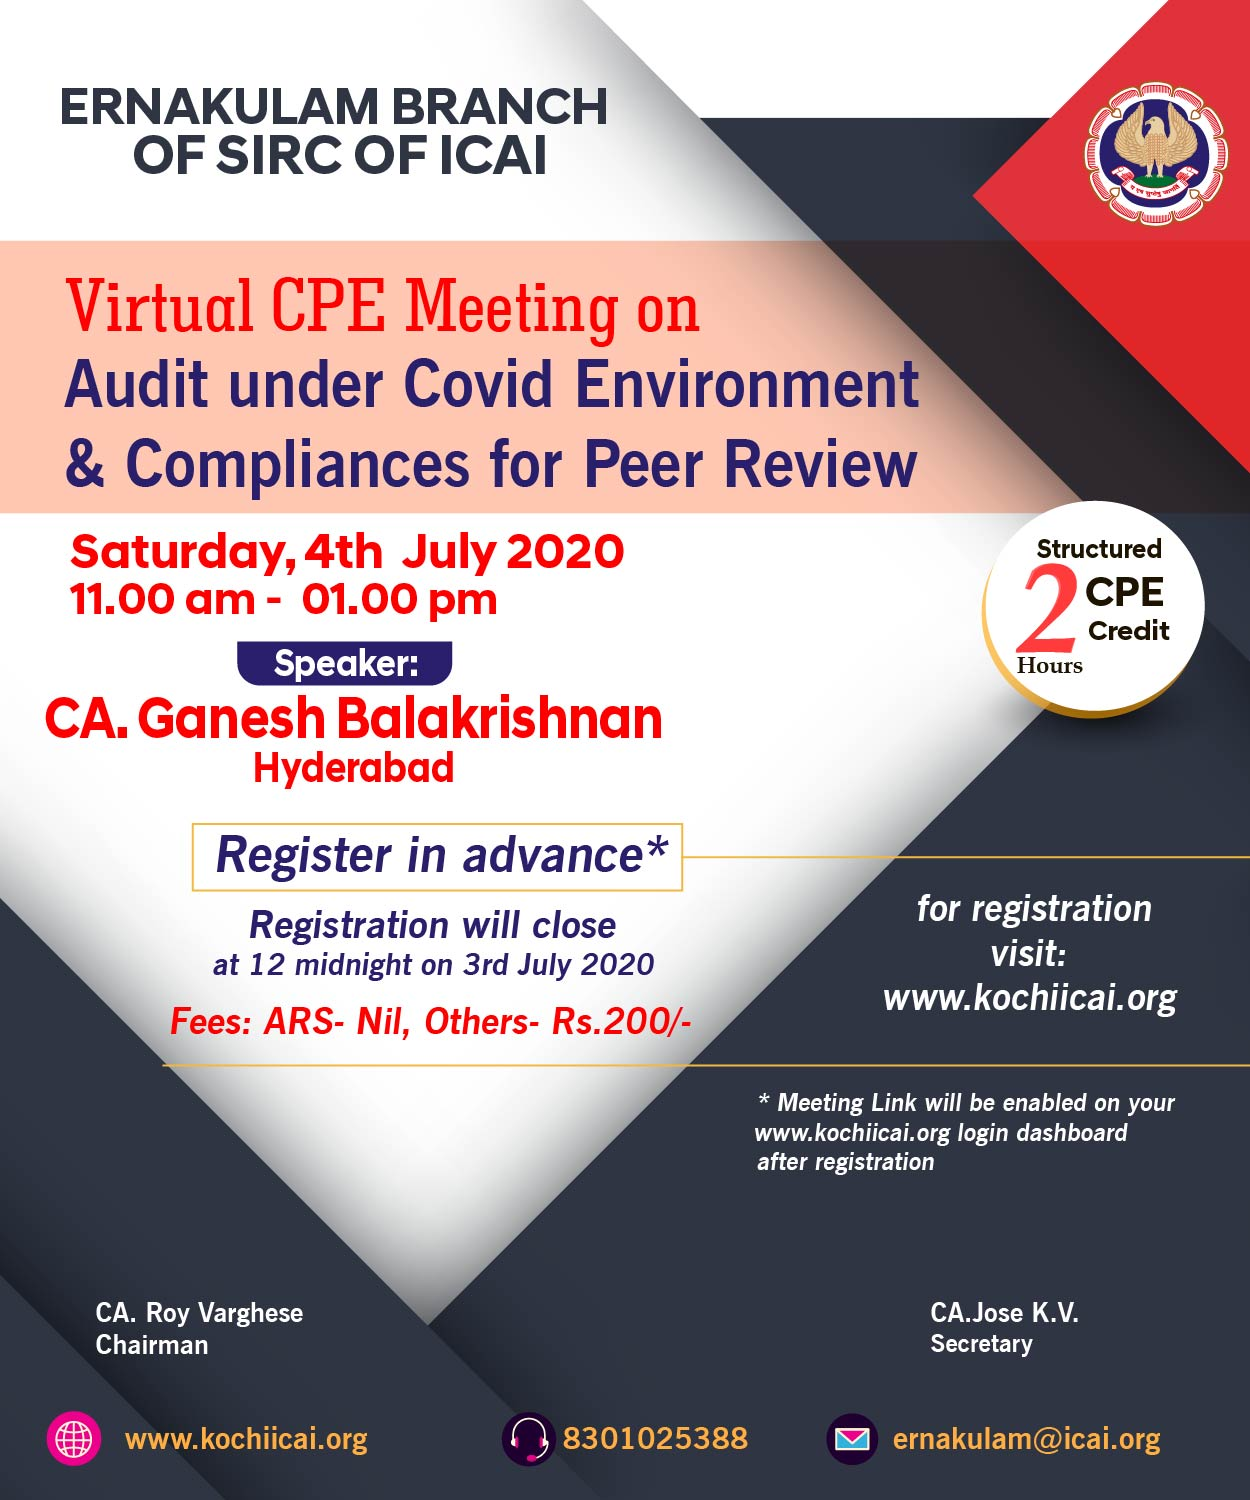 Virtual CPE Meeting on Audit under Covid Environment & Compliances for Peer Review